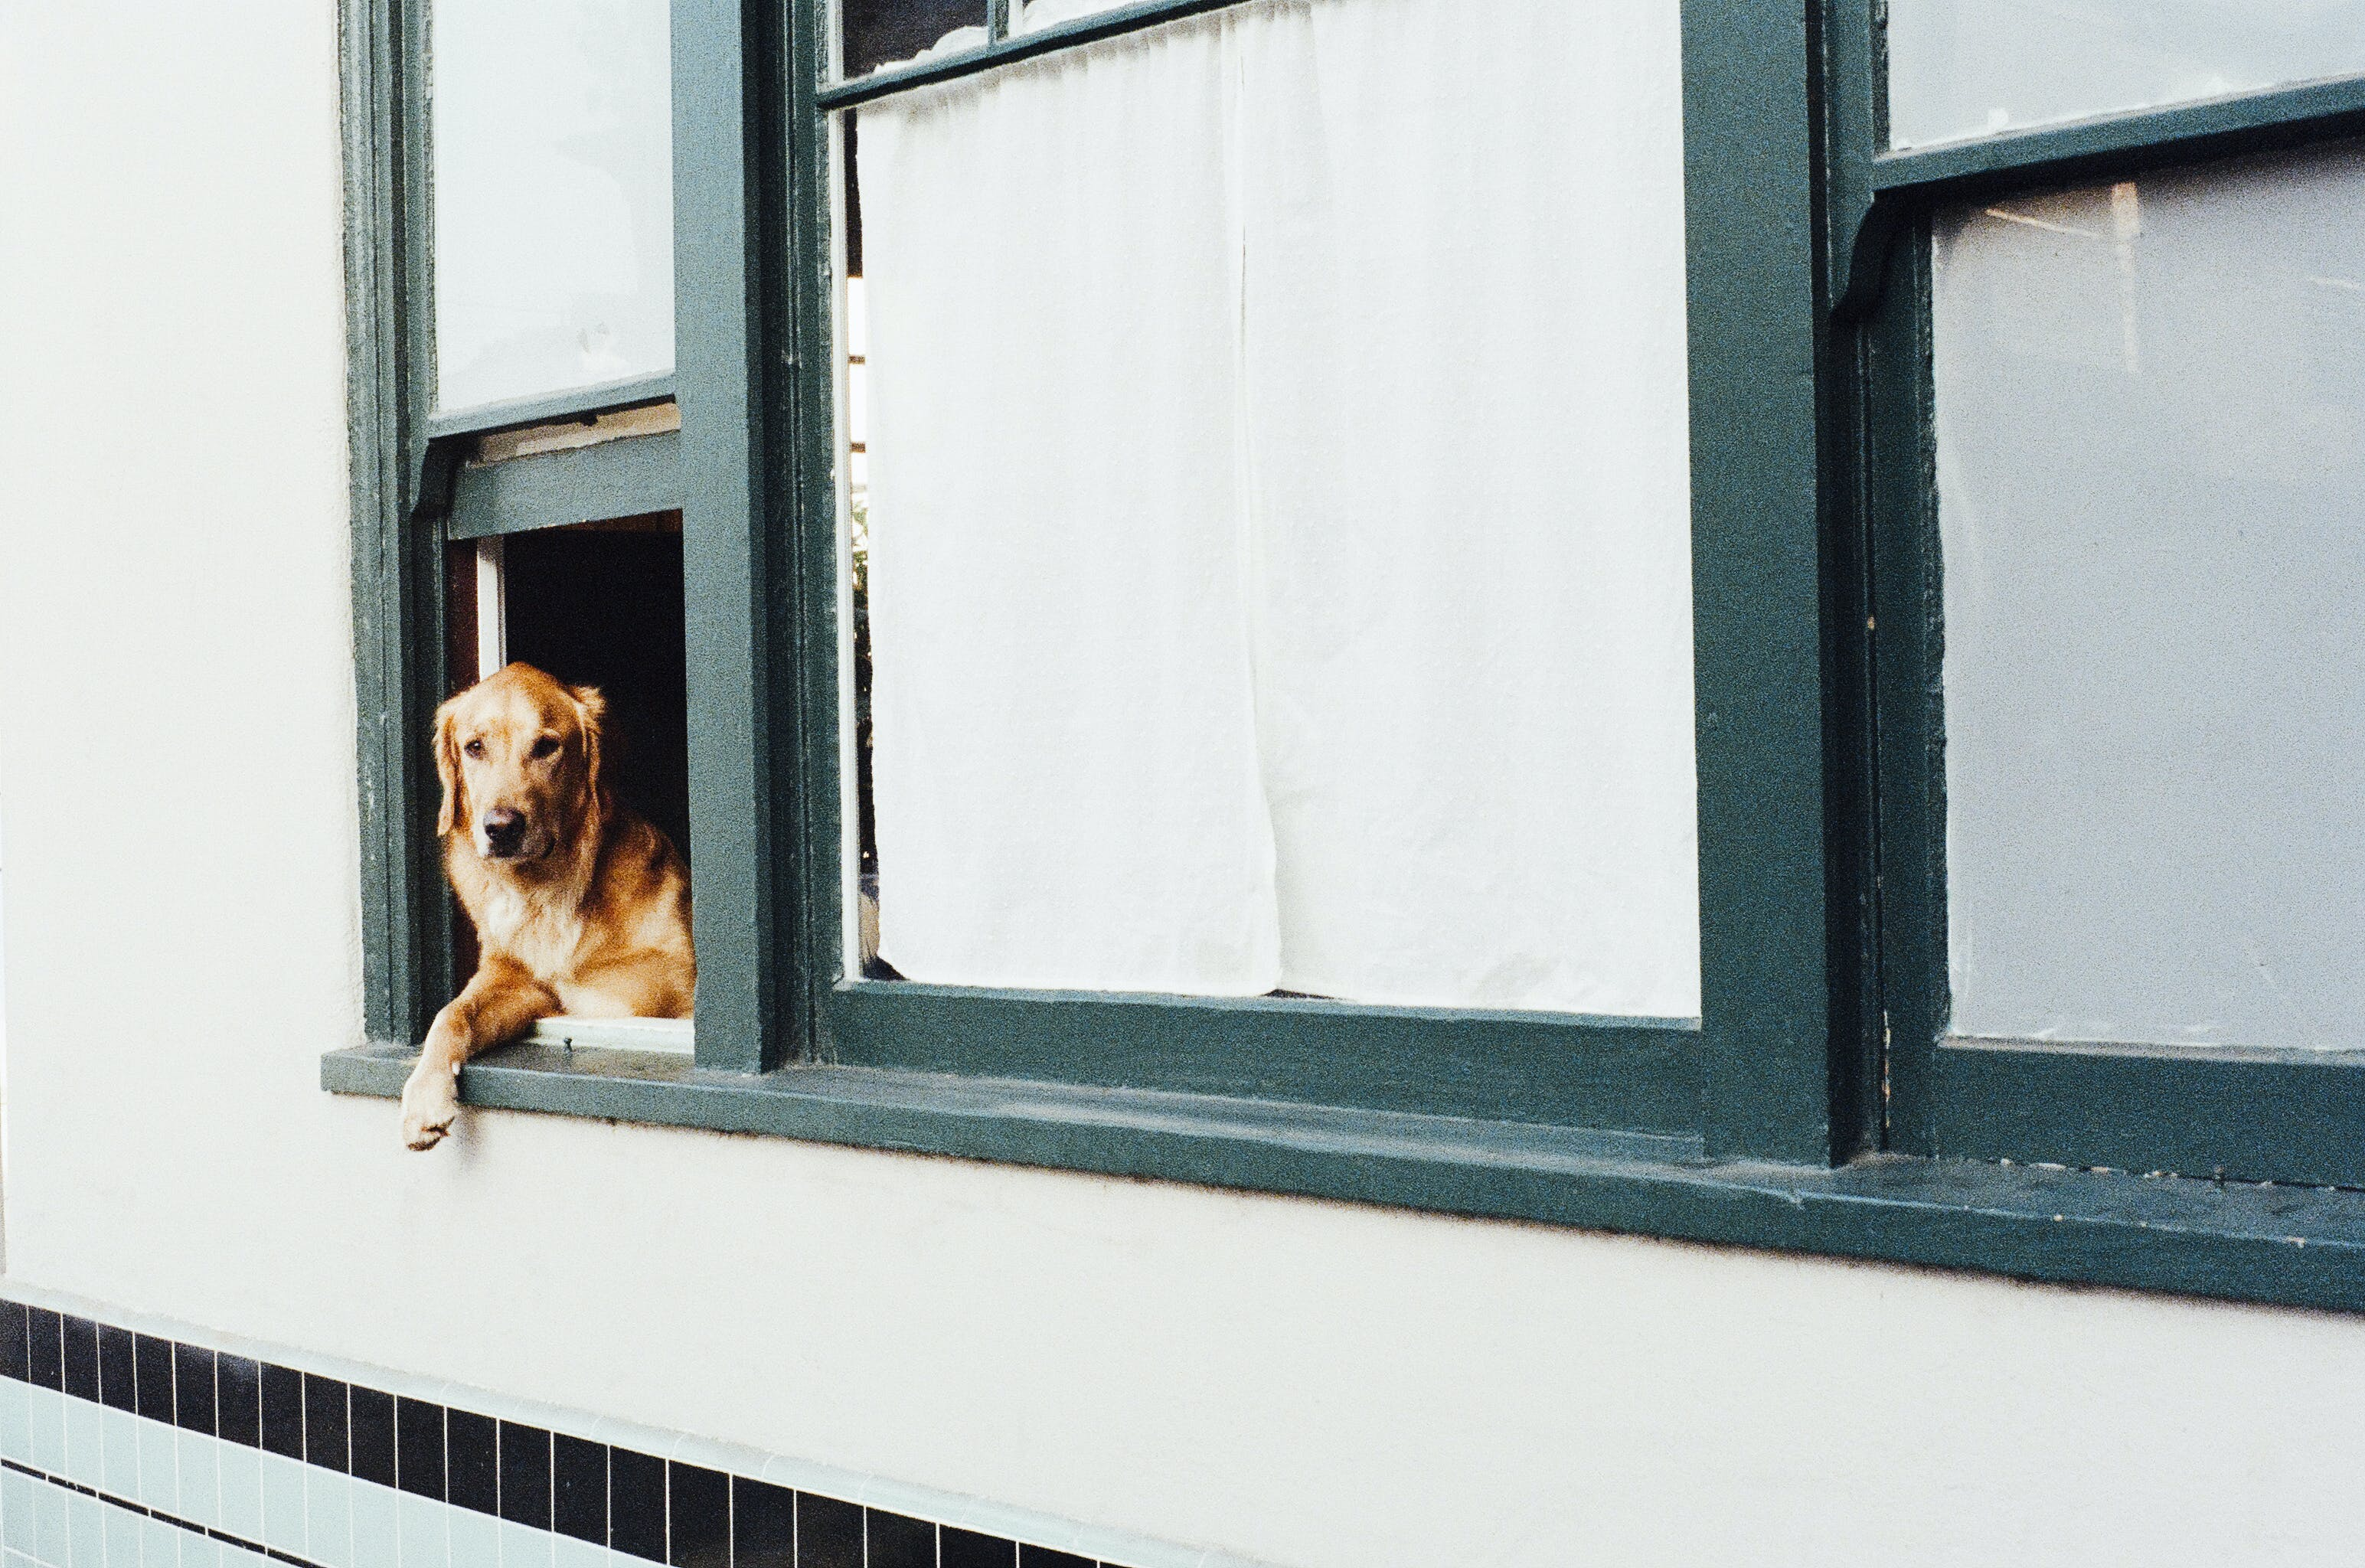 Free stock photo of animal, dog, pet, window